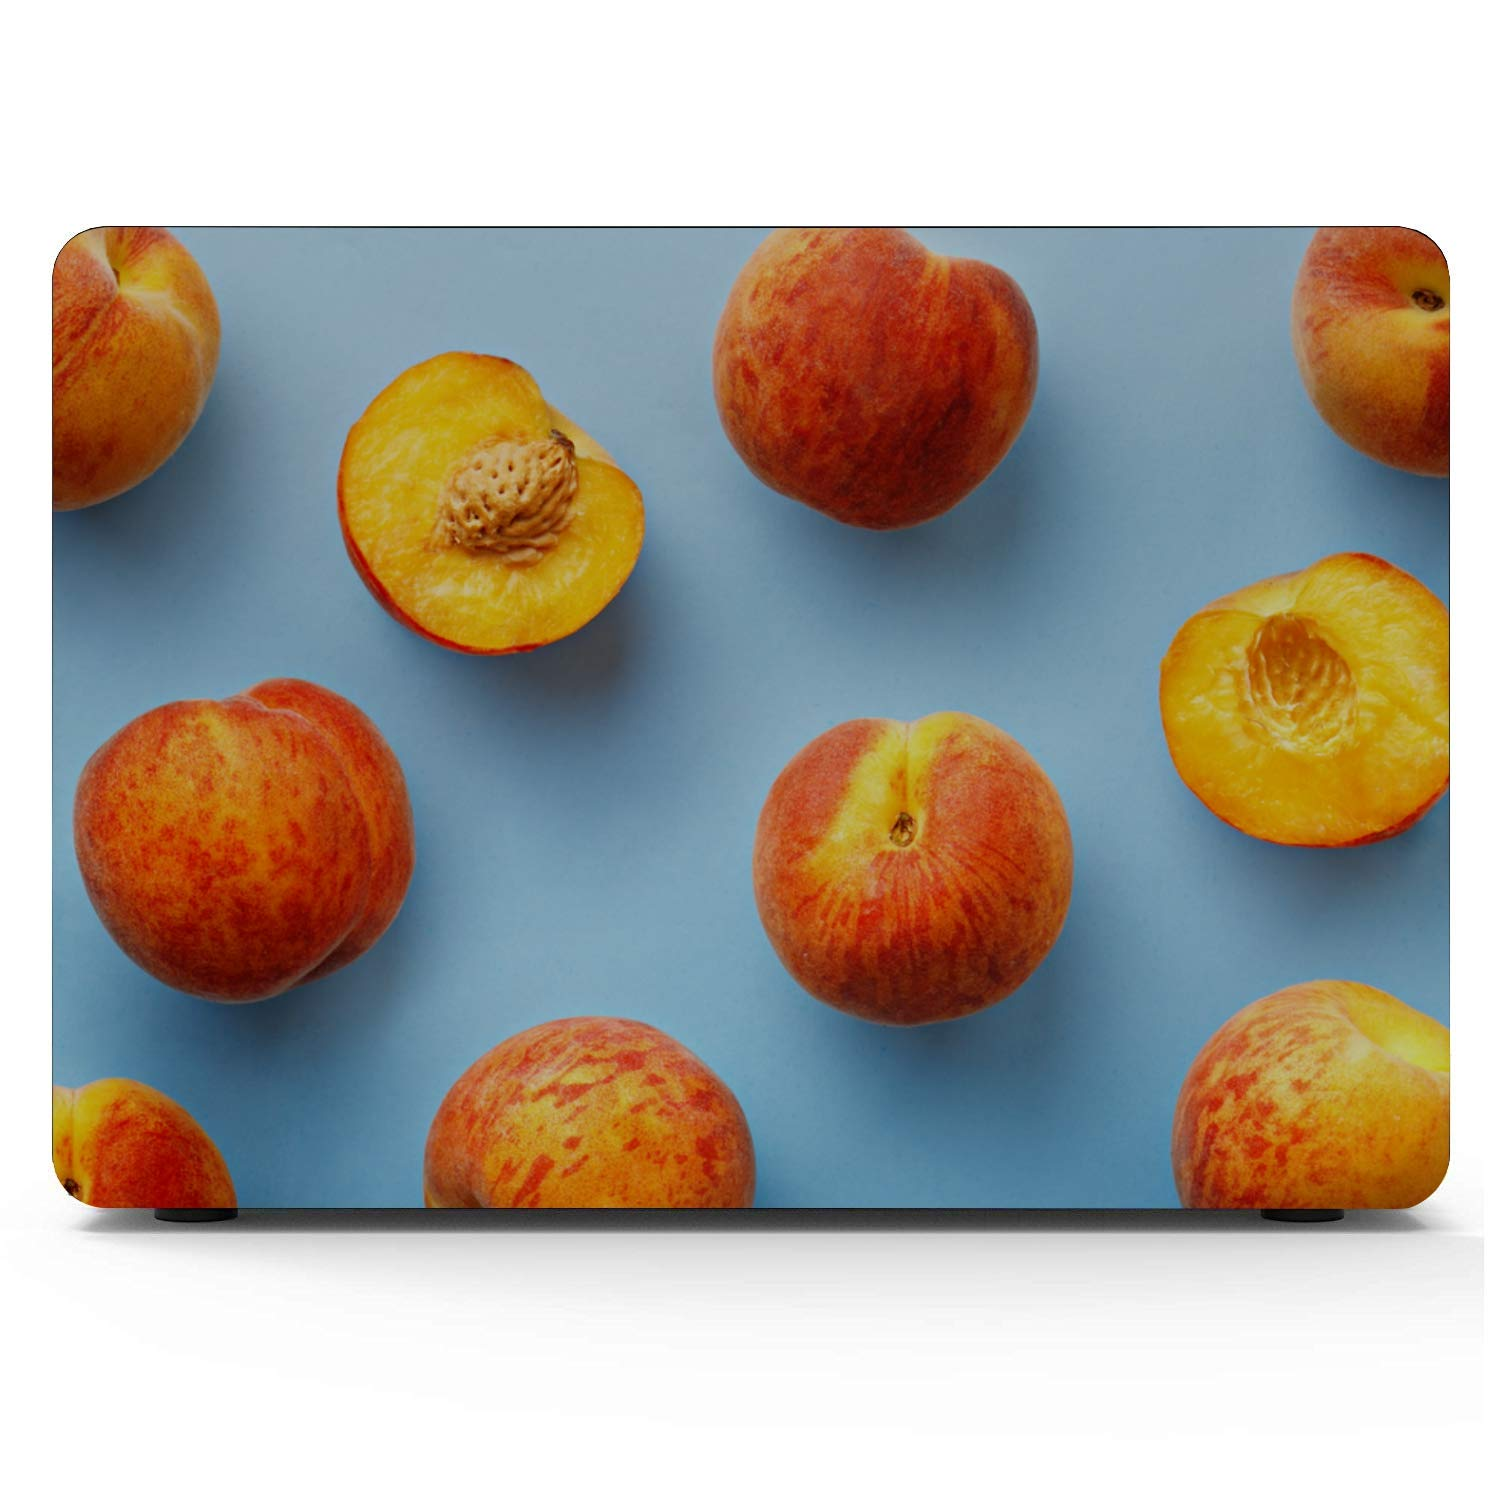 Mac Book Accessories Summer Sweet Fruit Yellow Peach Canned Plastic Hard Shell Compatible Mac Air 11 Pro 13 15 13inch MacBook Air Case Protection for MacBook 2016-2019 Version